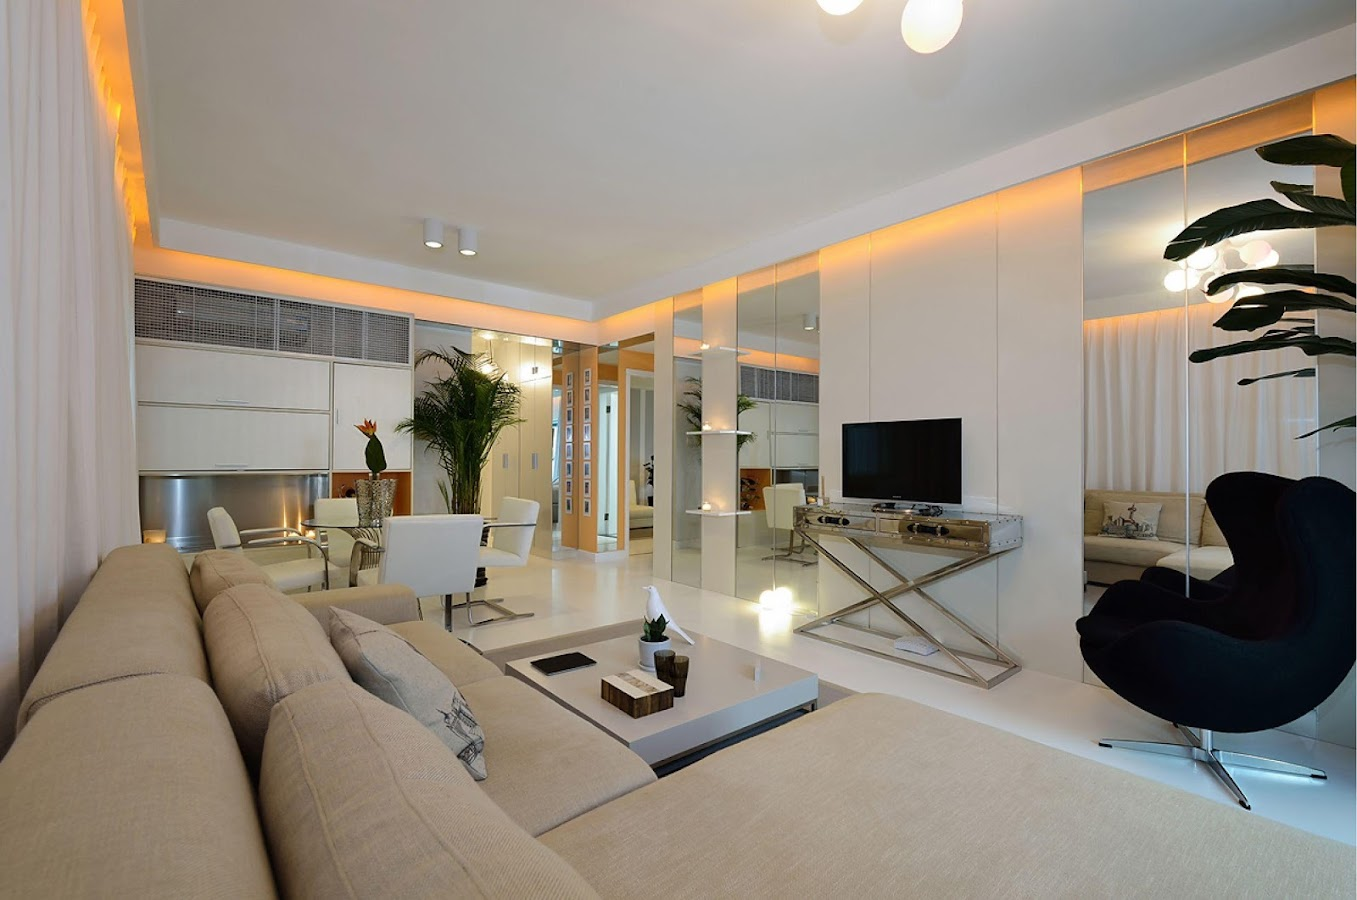 Interior design ideas android apps on google play for Interior designs play